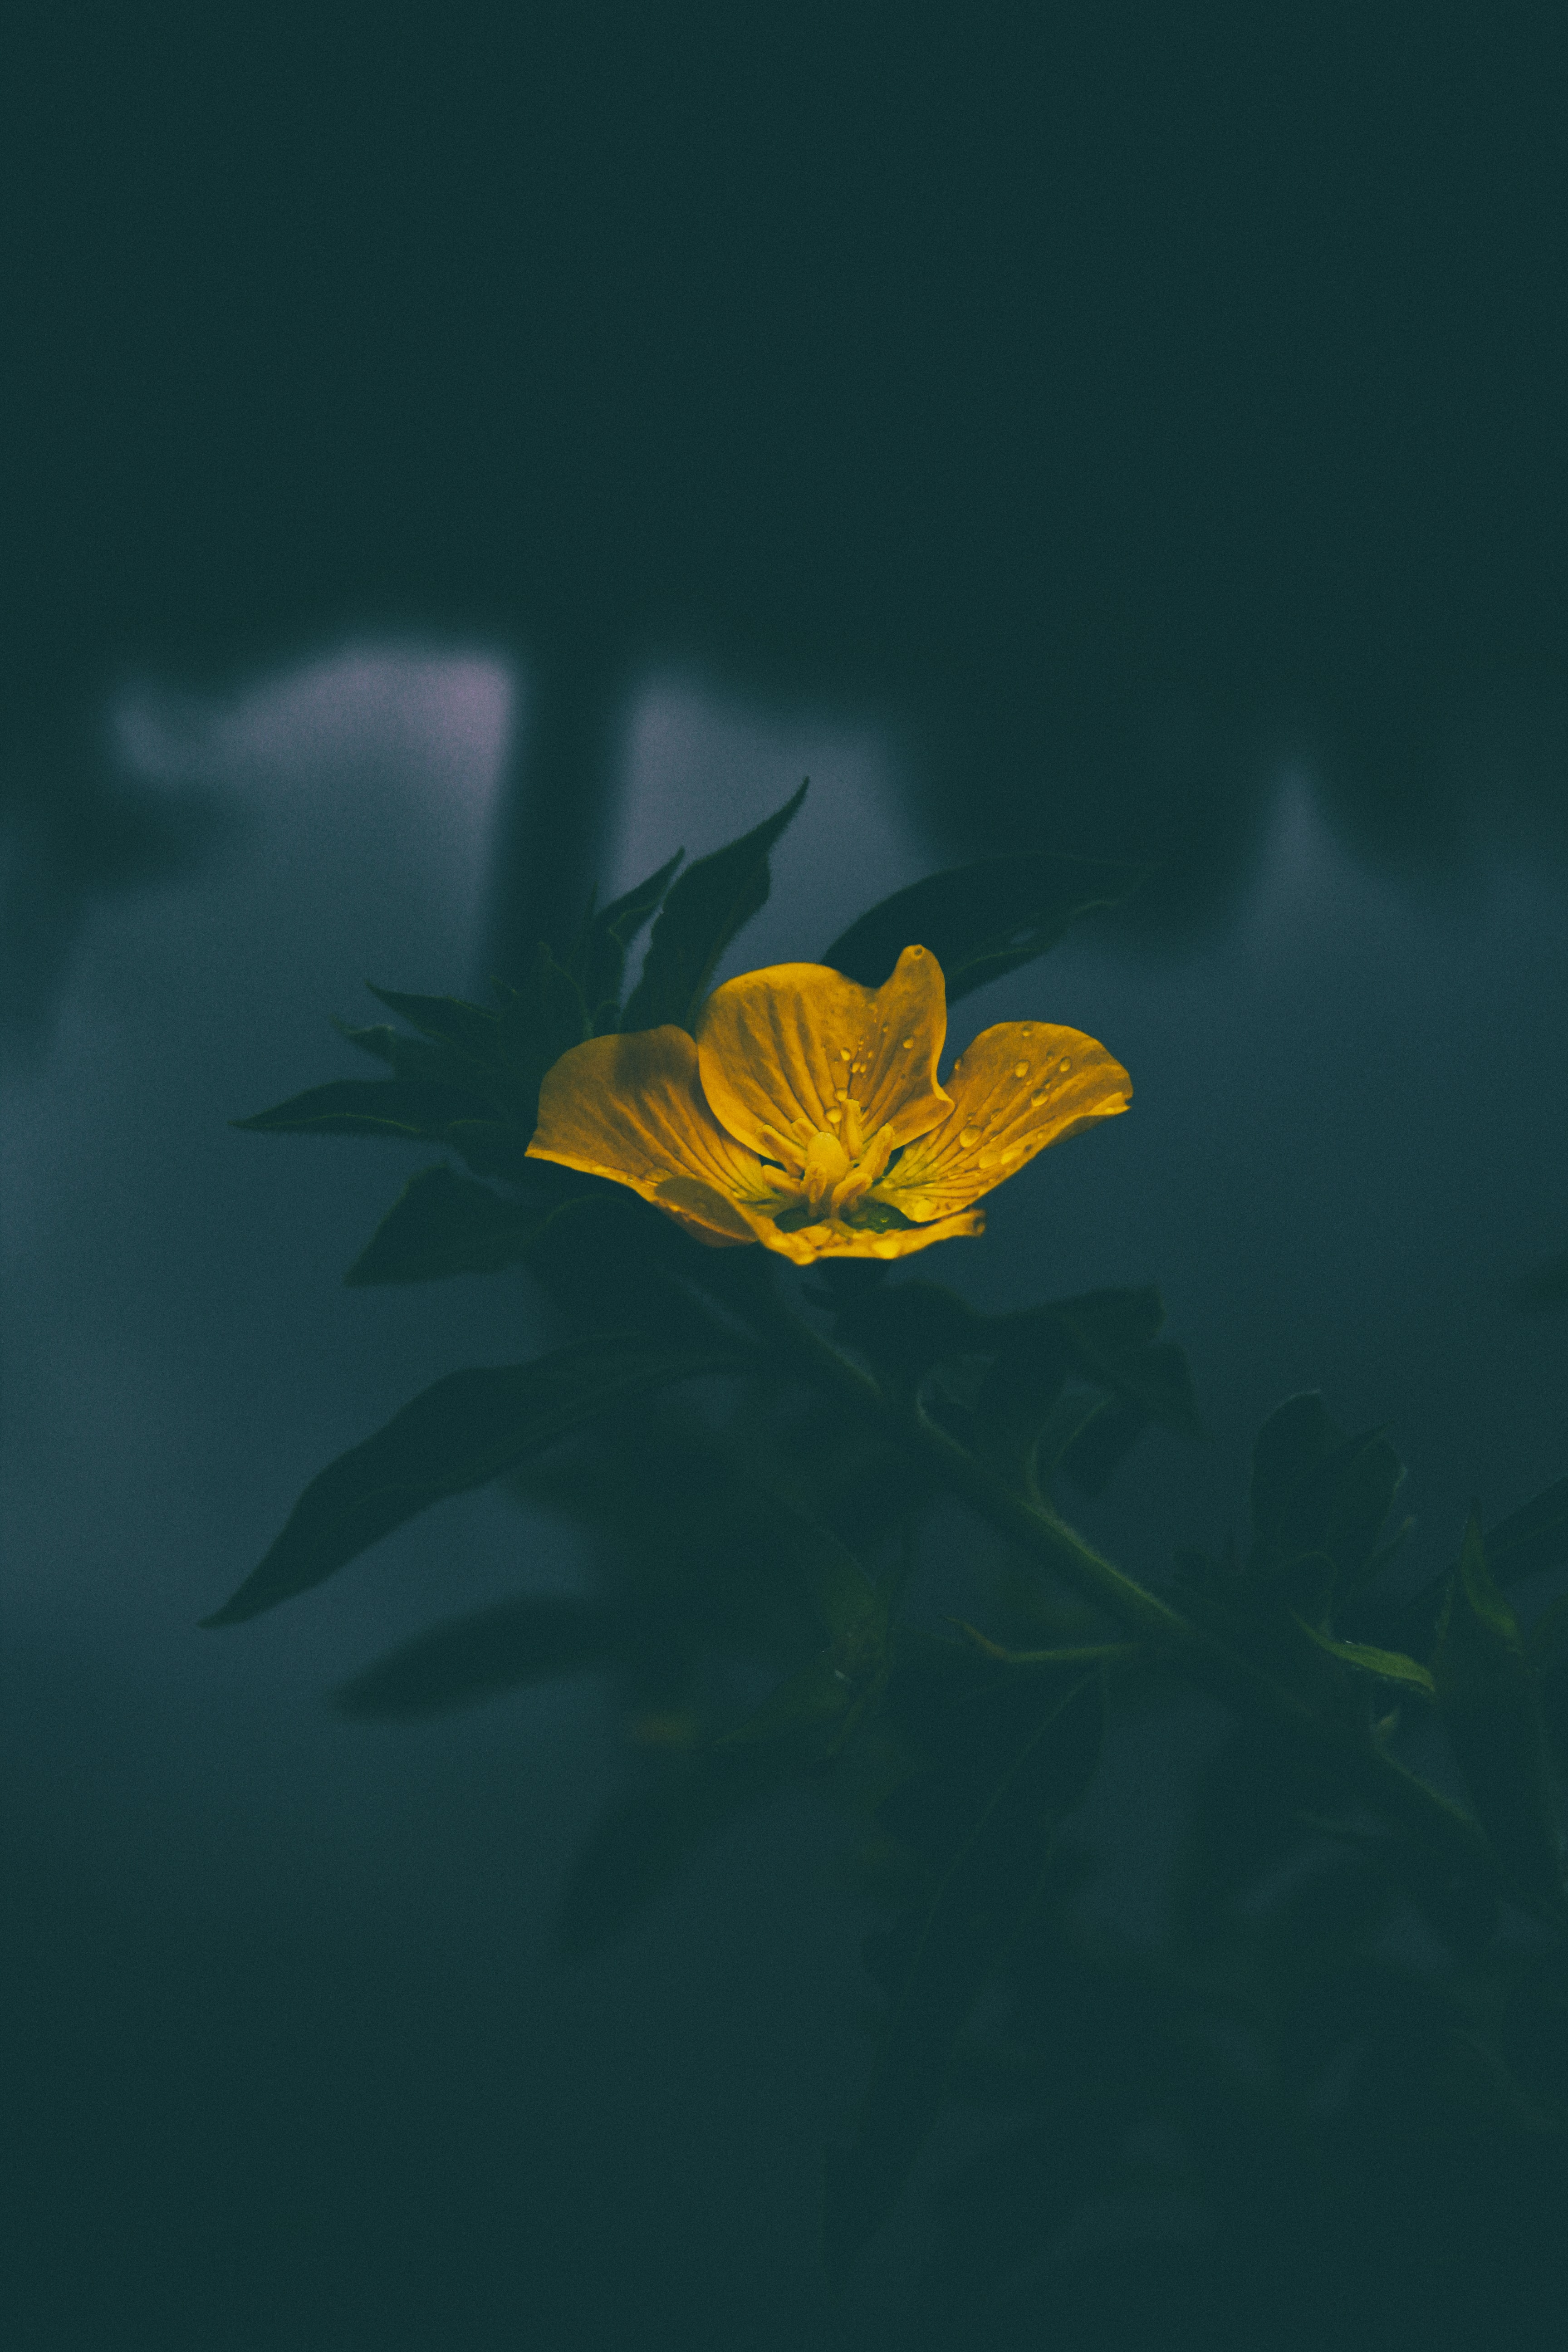 A dim shot of a single yellow flower against a dark background